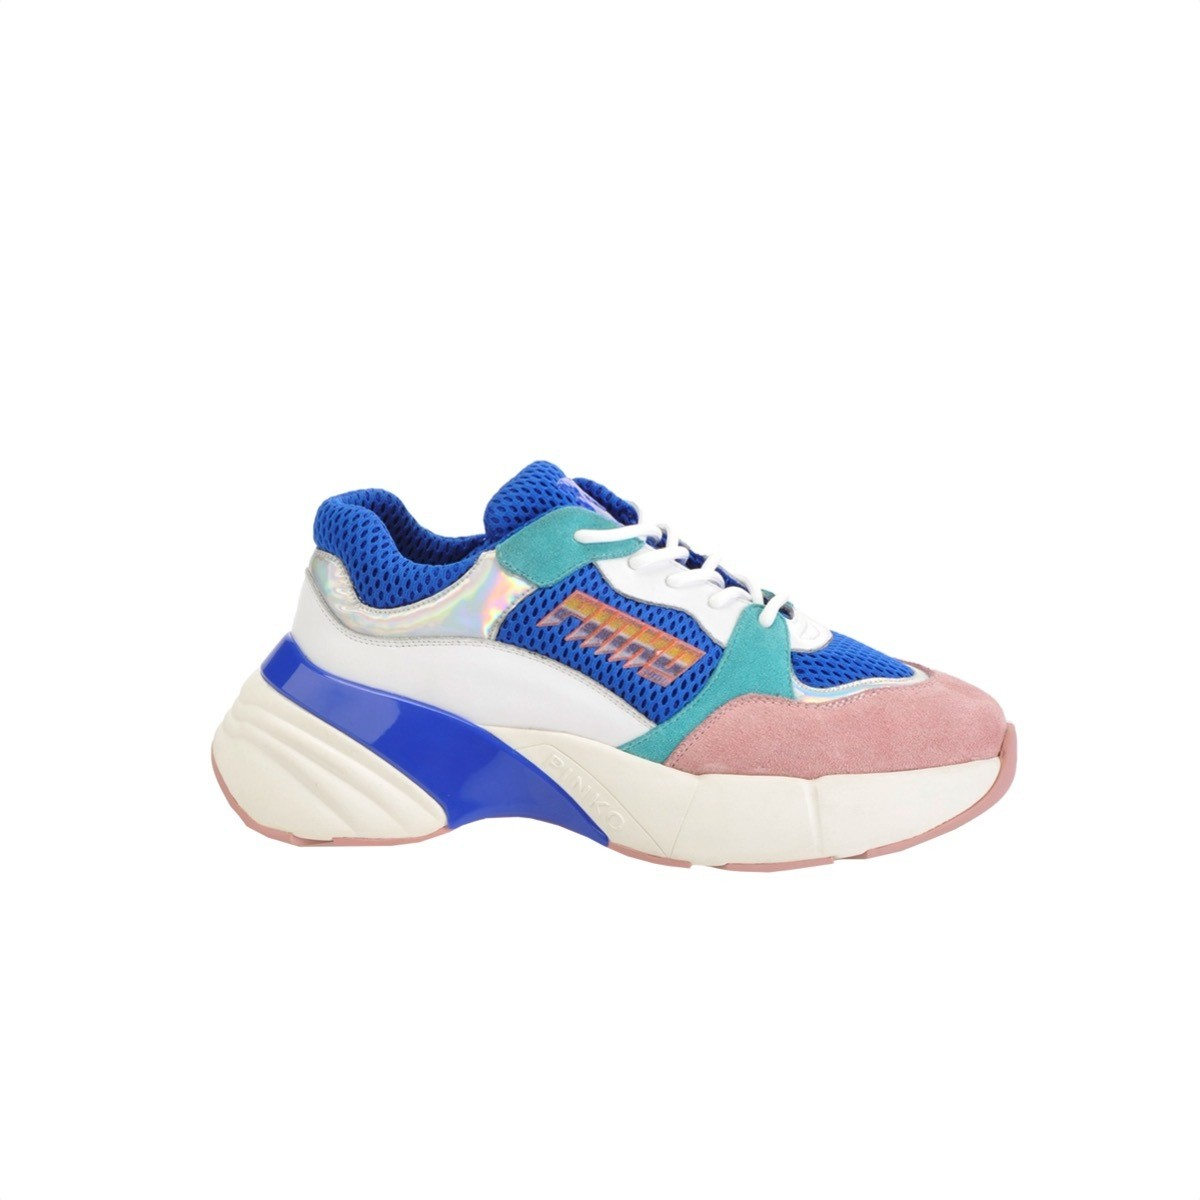 PINKO - Sneakers Shoes To Rock in rete tecnica e suede - Blu/Bianco/Rosa